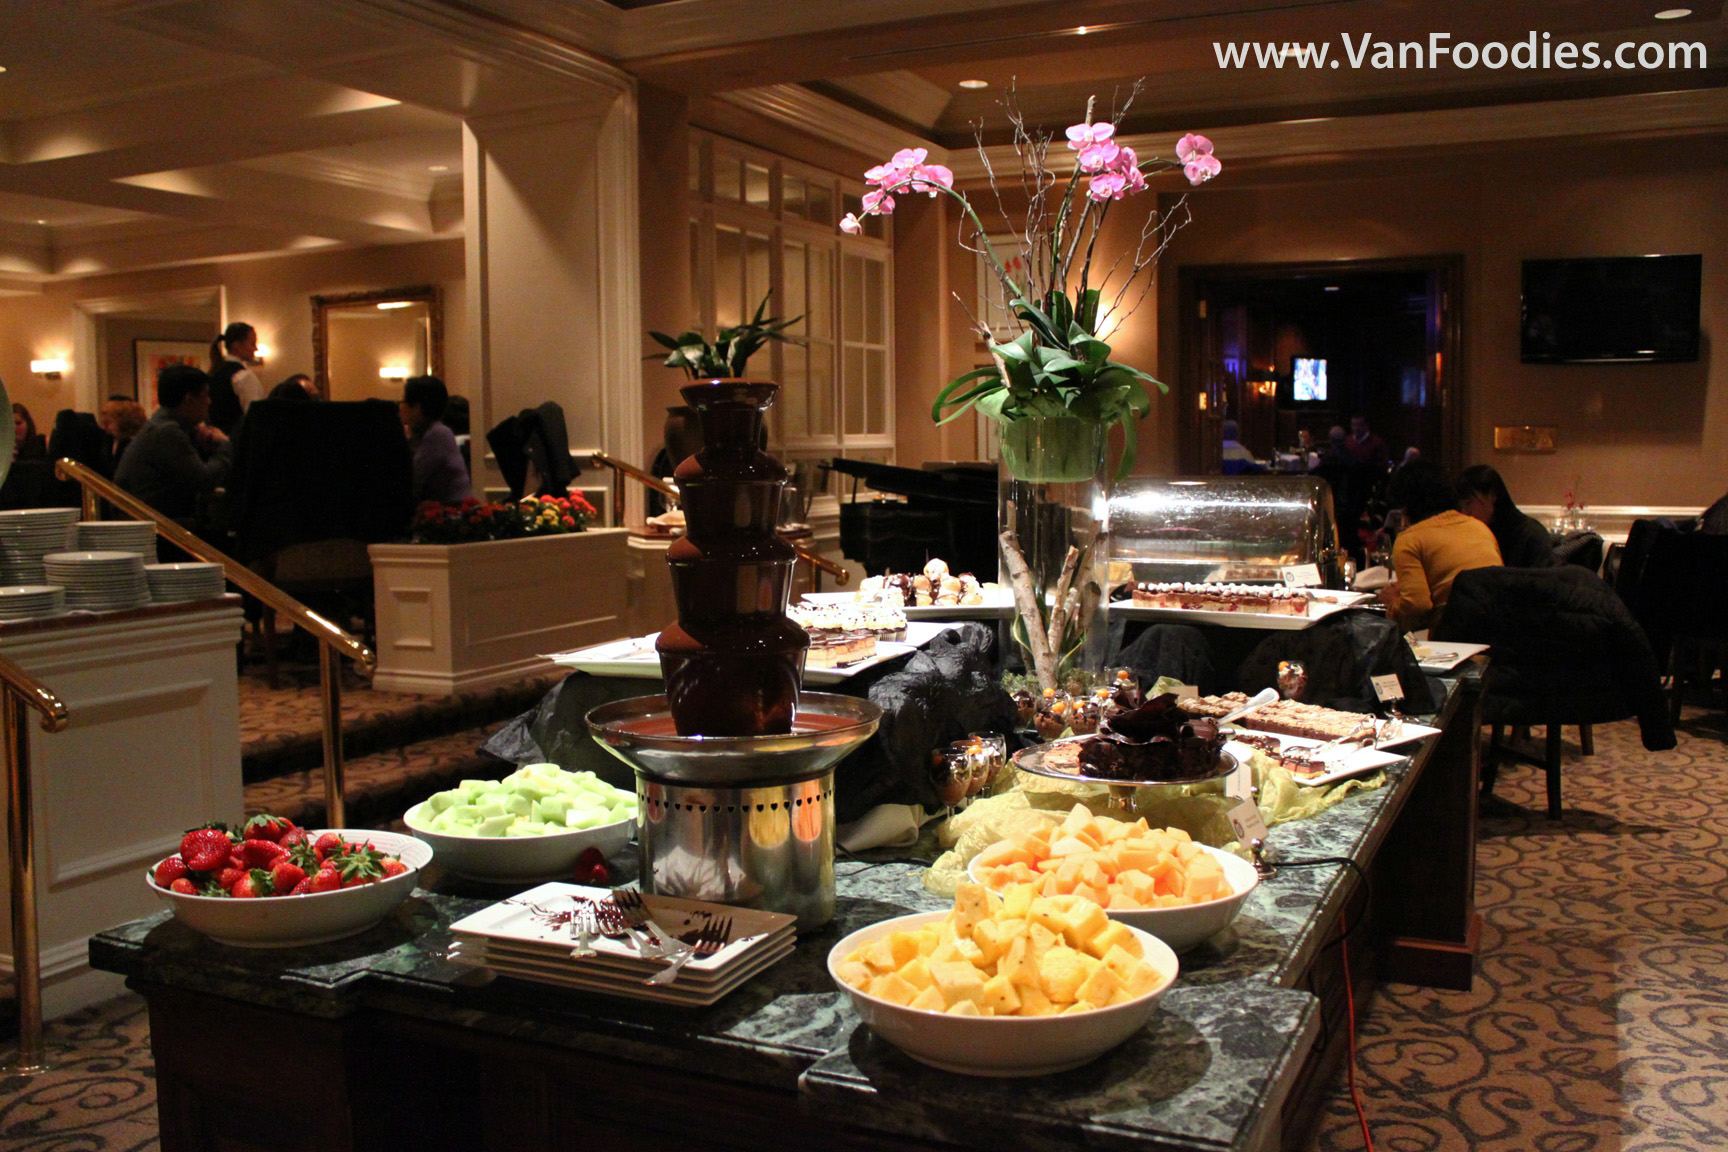 World Famous Chocolate Buffet at Sutton Place | VanFoodies.com